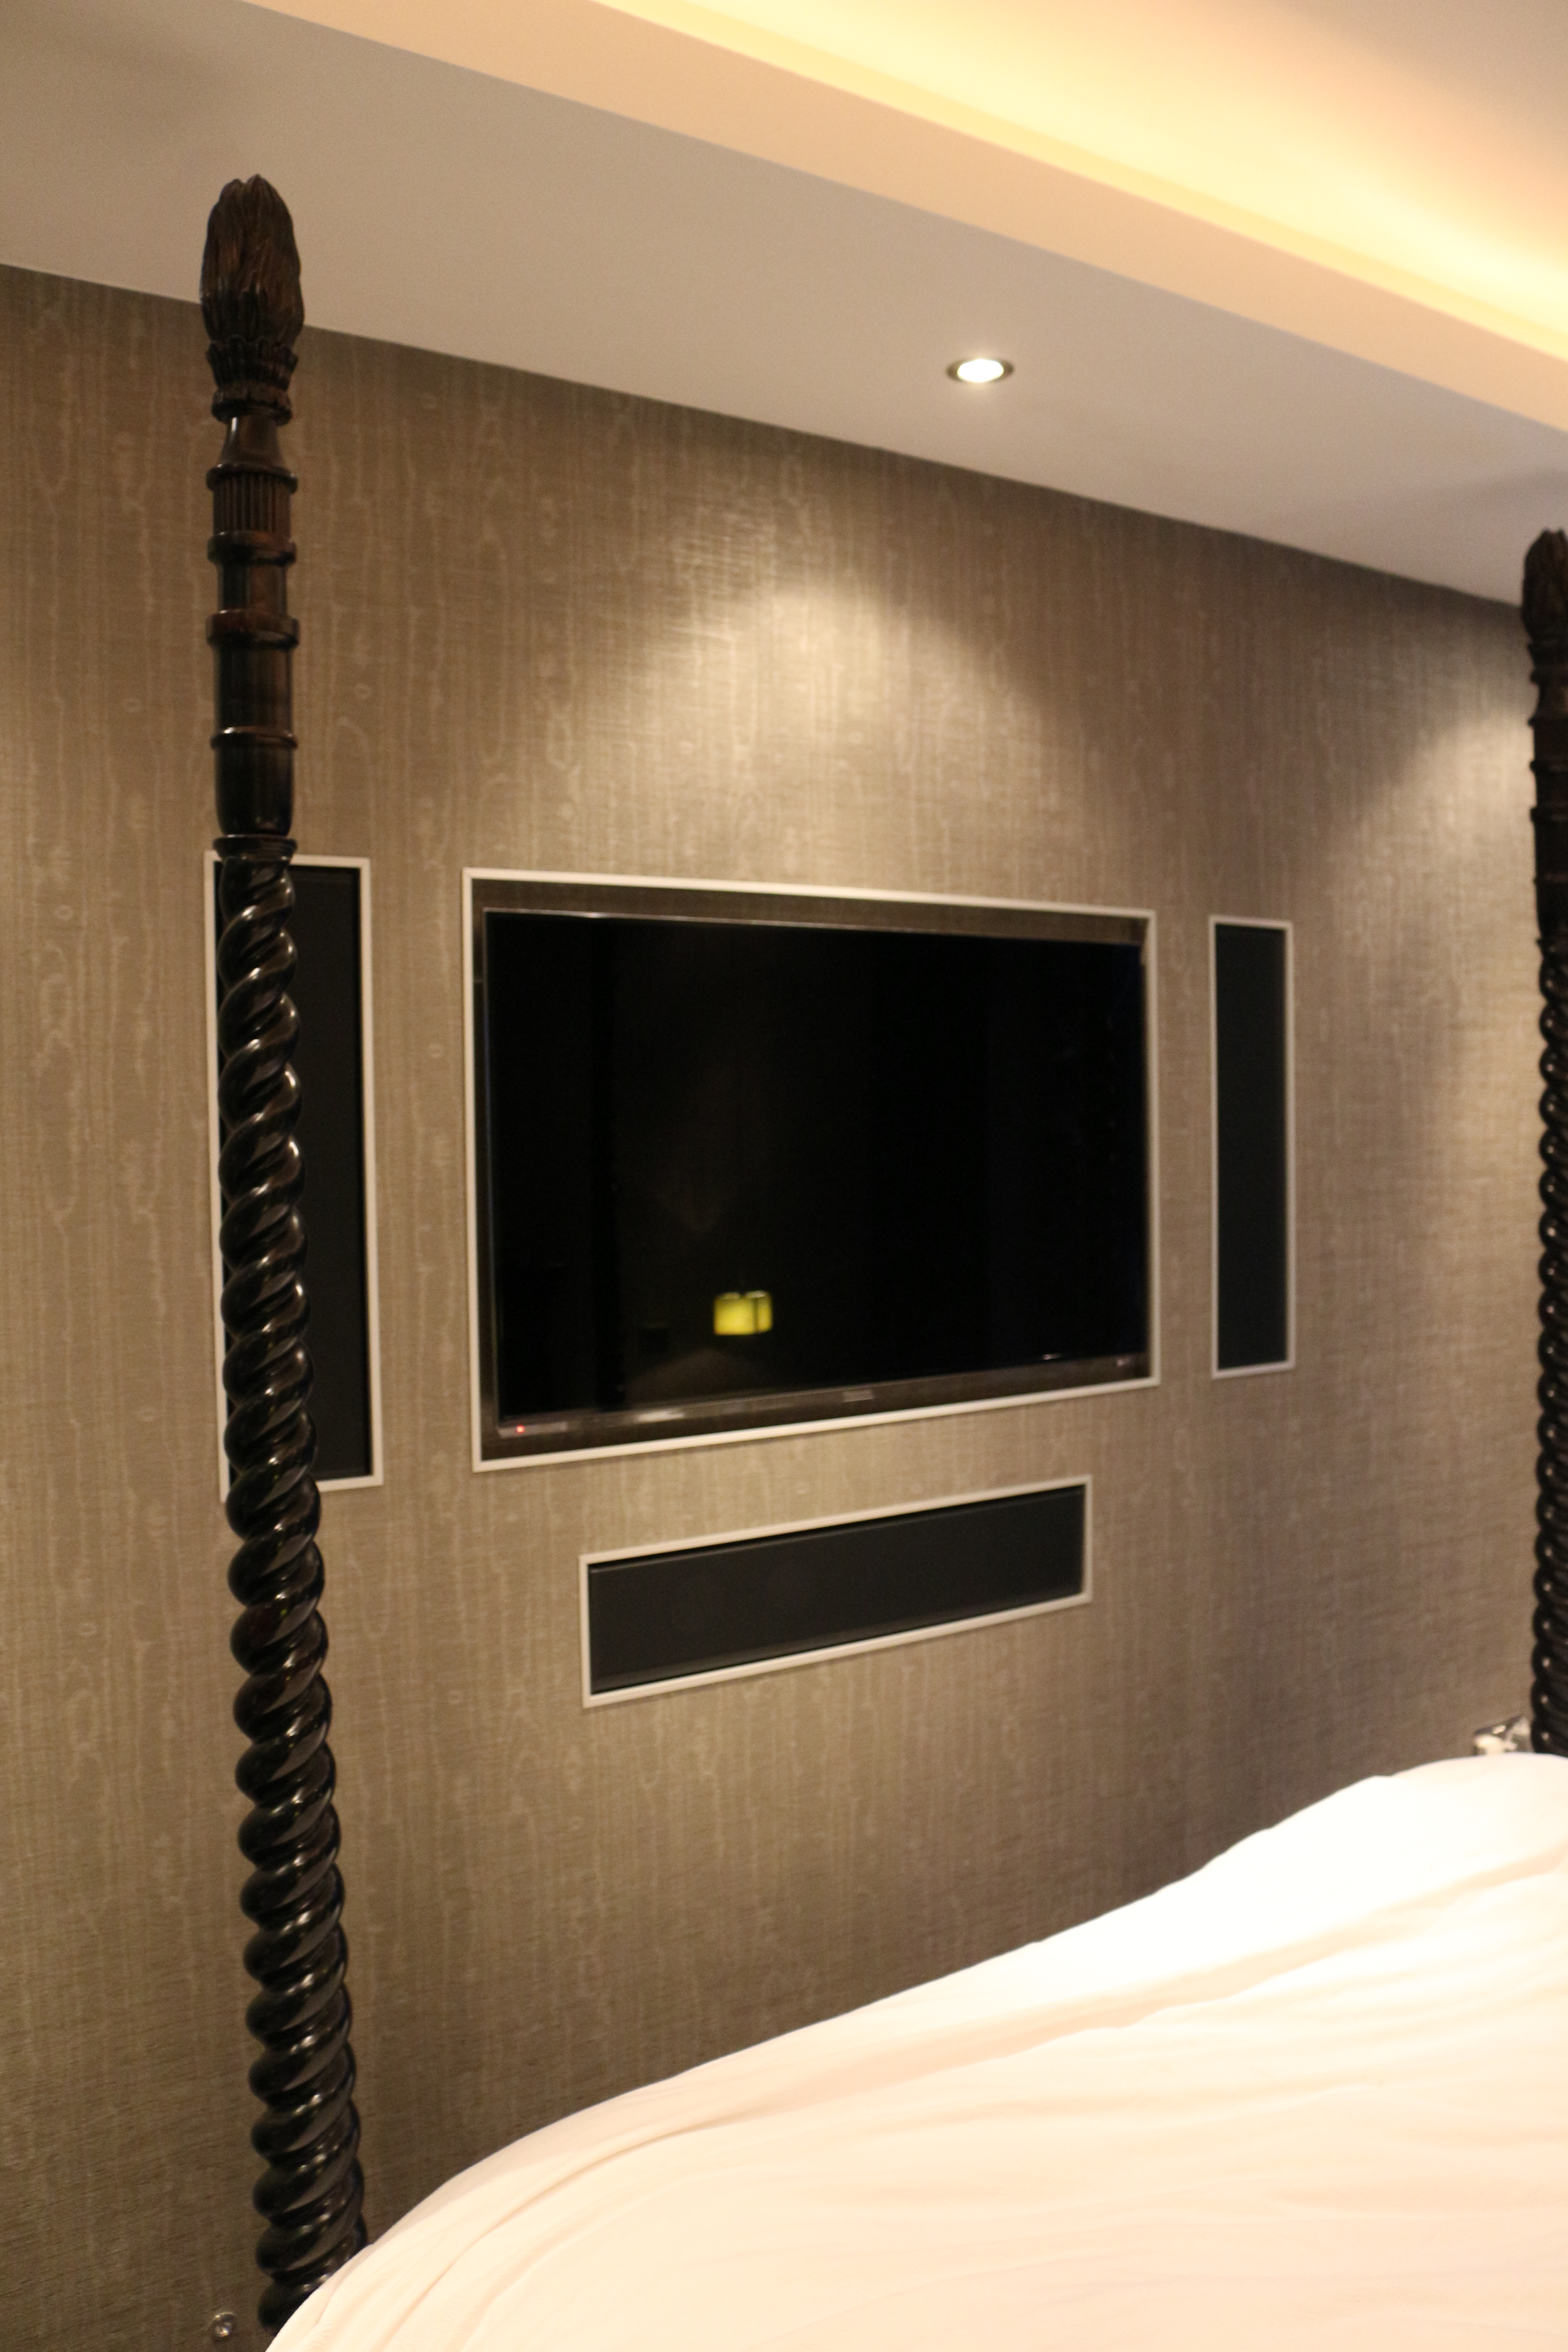 Tea London Limited Is A Custom Audio Visual Installer Based In The South East Of London